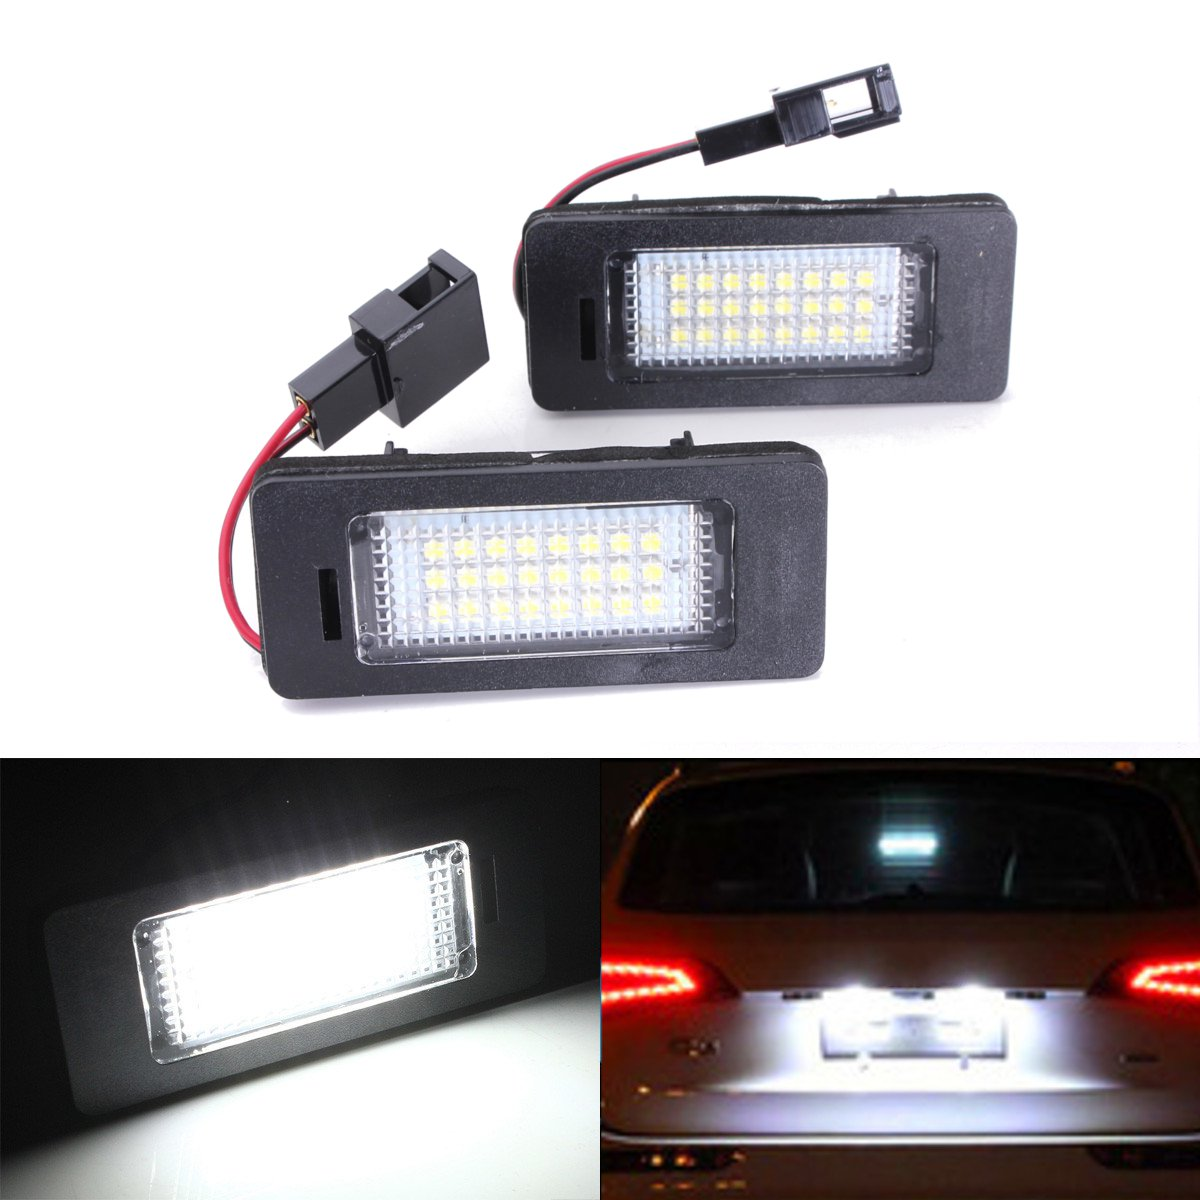 2x LED Car Number License Plate Light 12V SMD3528 For Audi A4 B8 A5 Q5 S5 TT A1 S4 A6 A7 2008-2013 Error Free